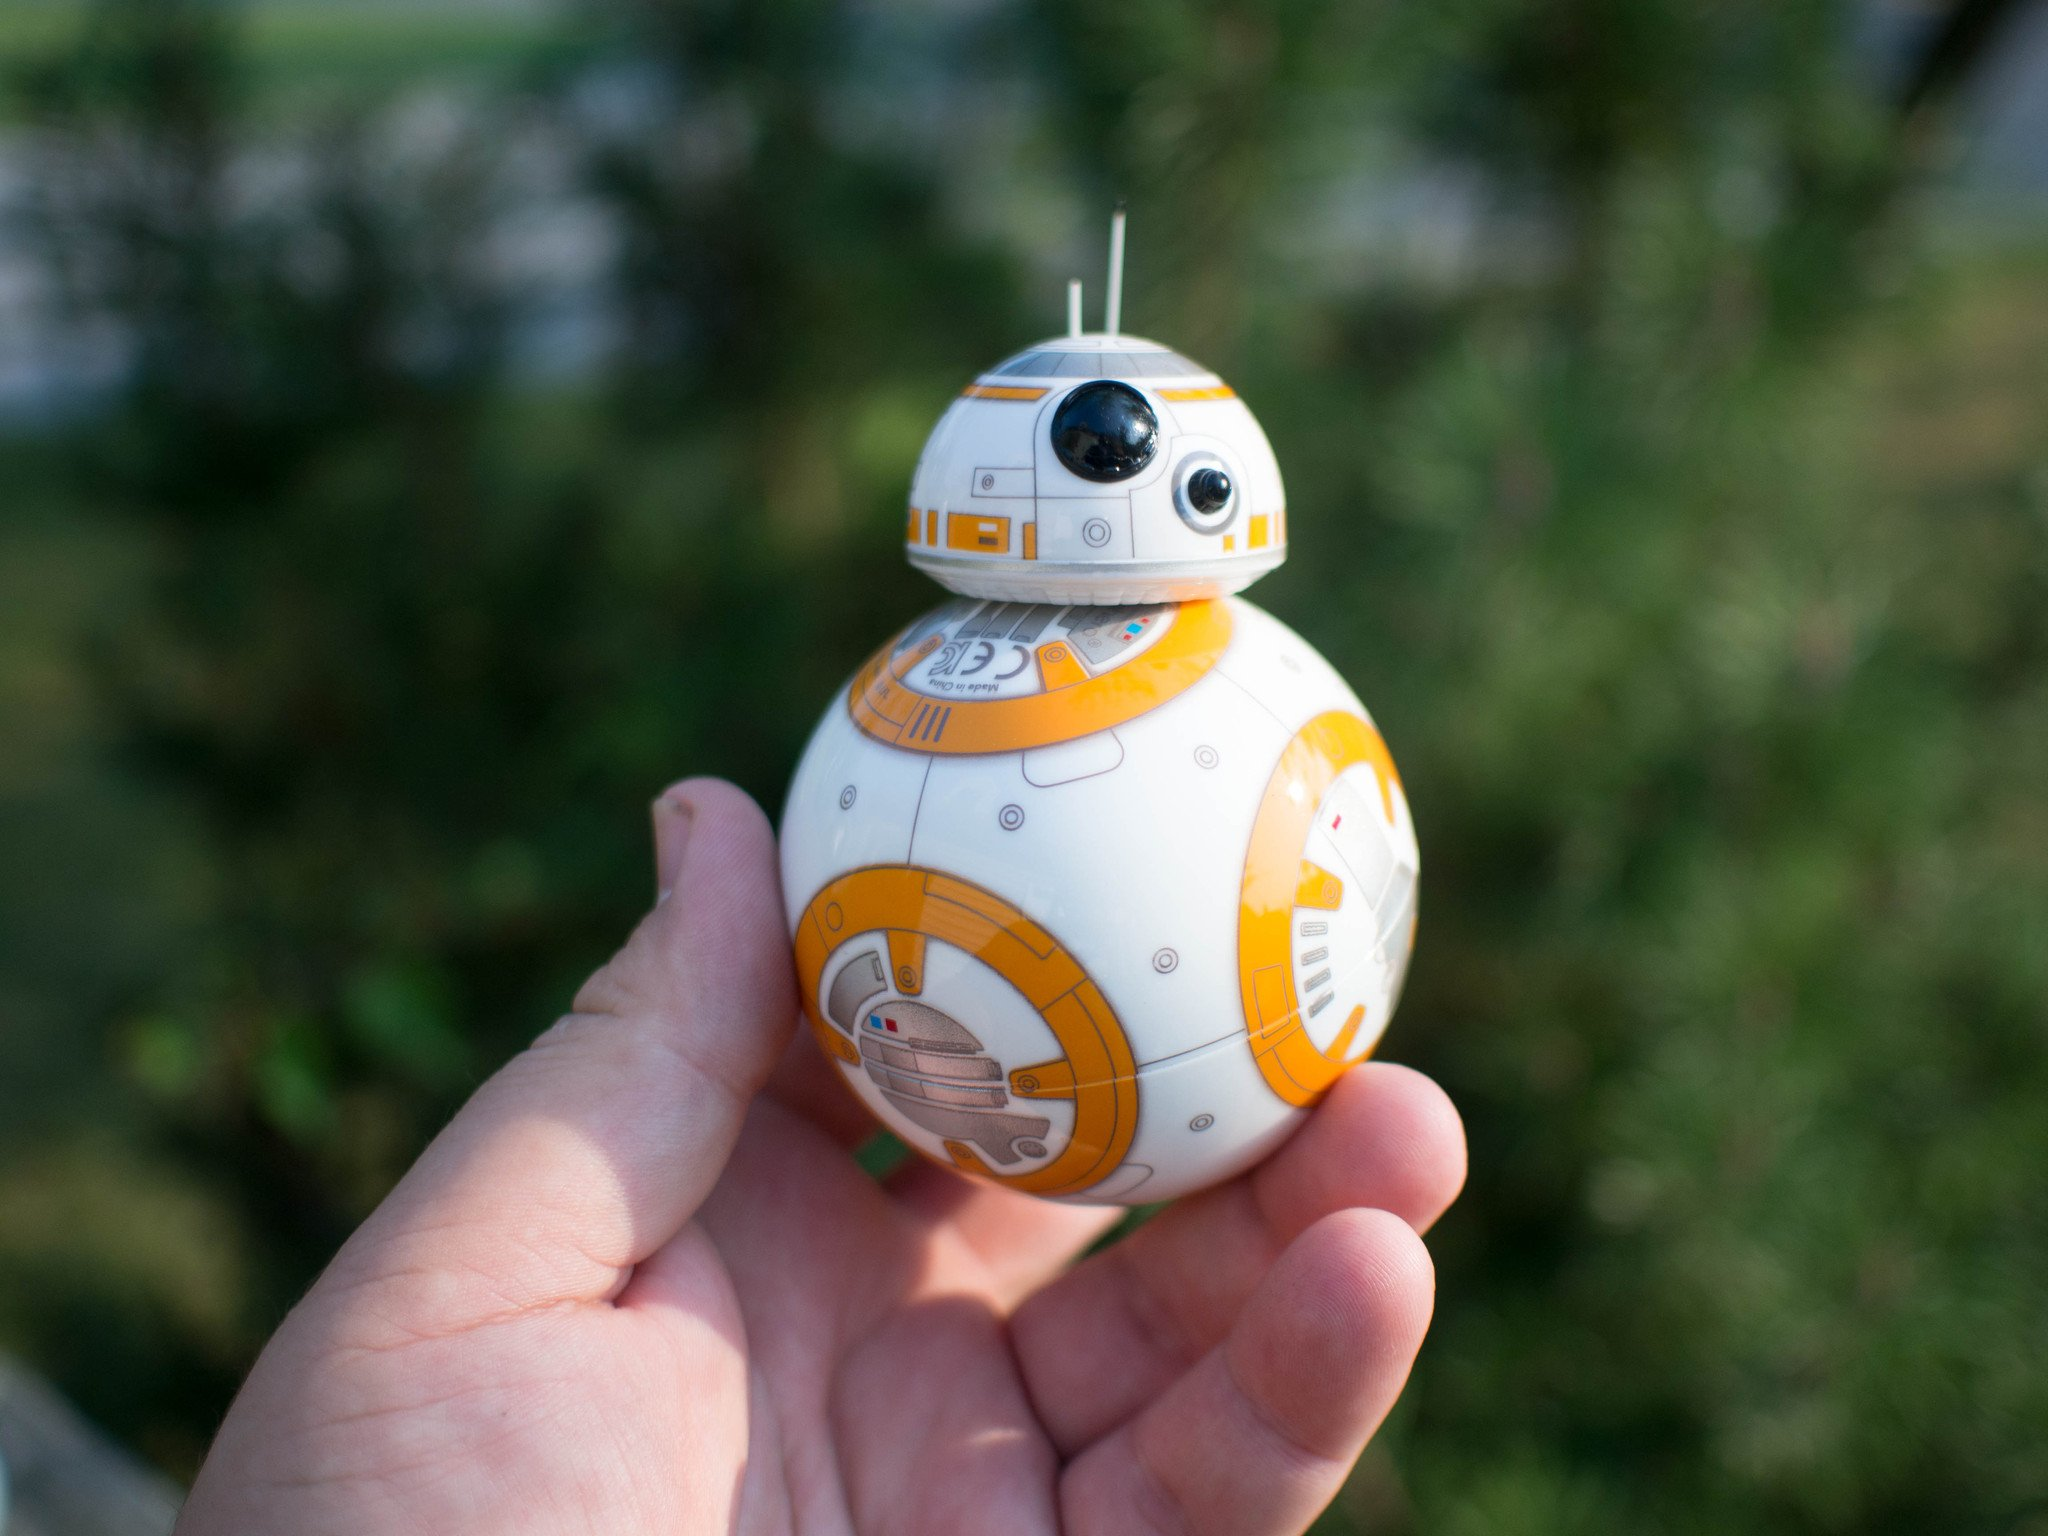 Cute Wallpapers For Lg Phones Bb 8 By Sphero Is Every Star Wars Fan S Dream Robot